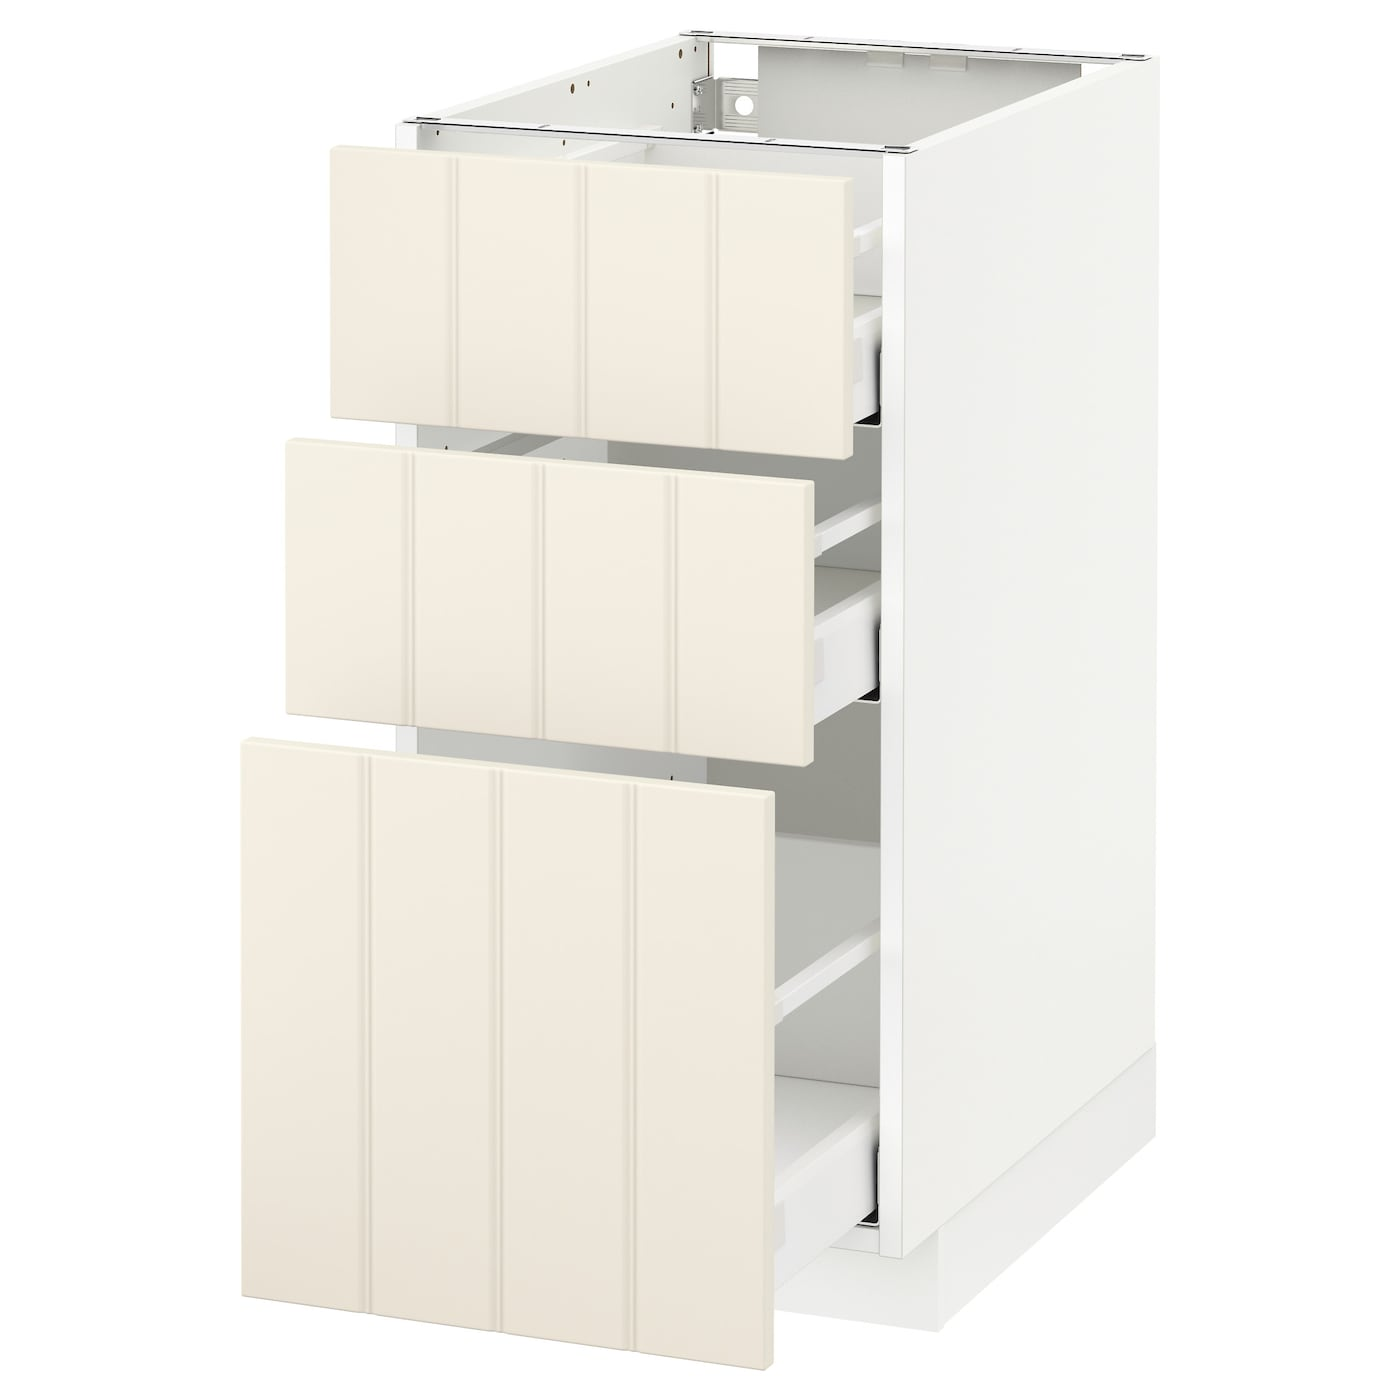 metod maximera base cabinet with 3 drawers white hittarp off white 40x60 cm ikea. Black Bedroom Furniture Sets. Home Design Ideas